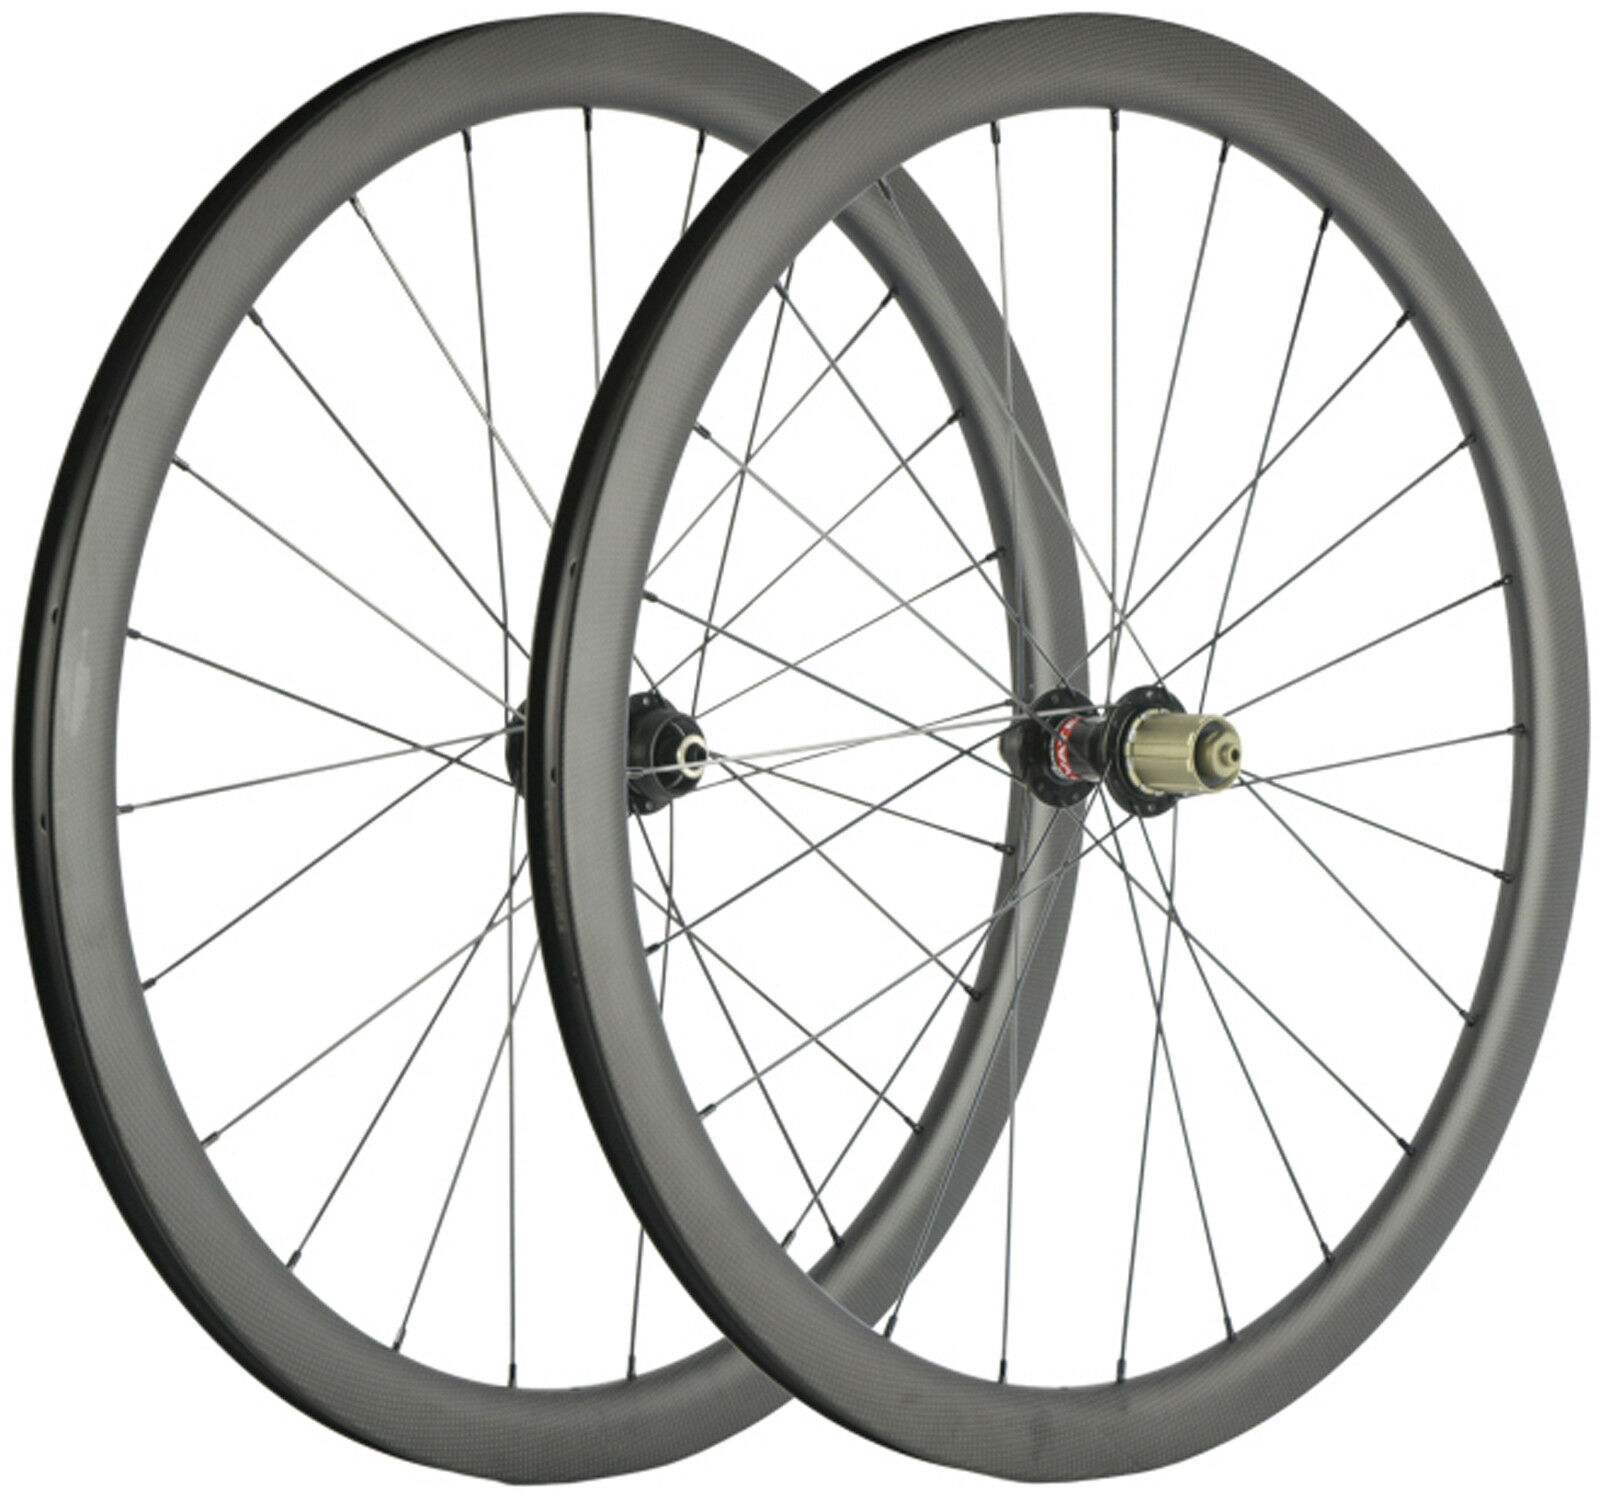 Carbon Cyclocross Wheelset 40mm Clincher Tubular Tubeless Disc Brake Wheels 700C